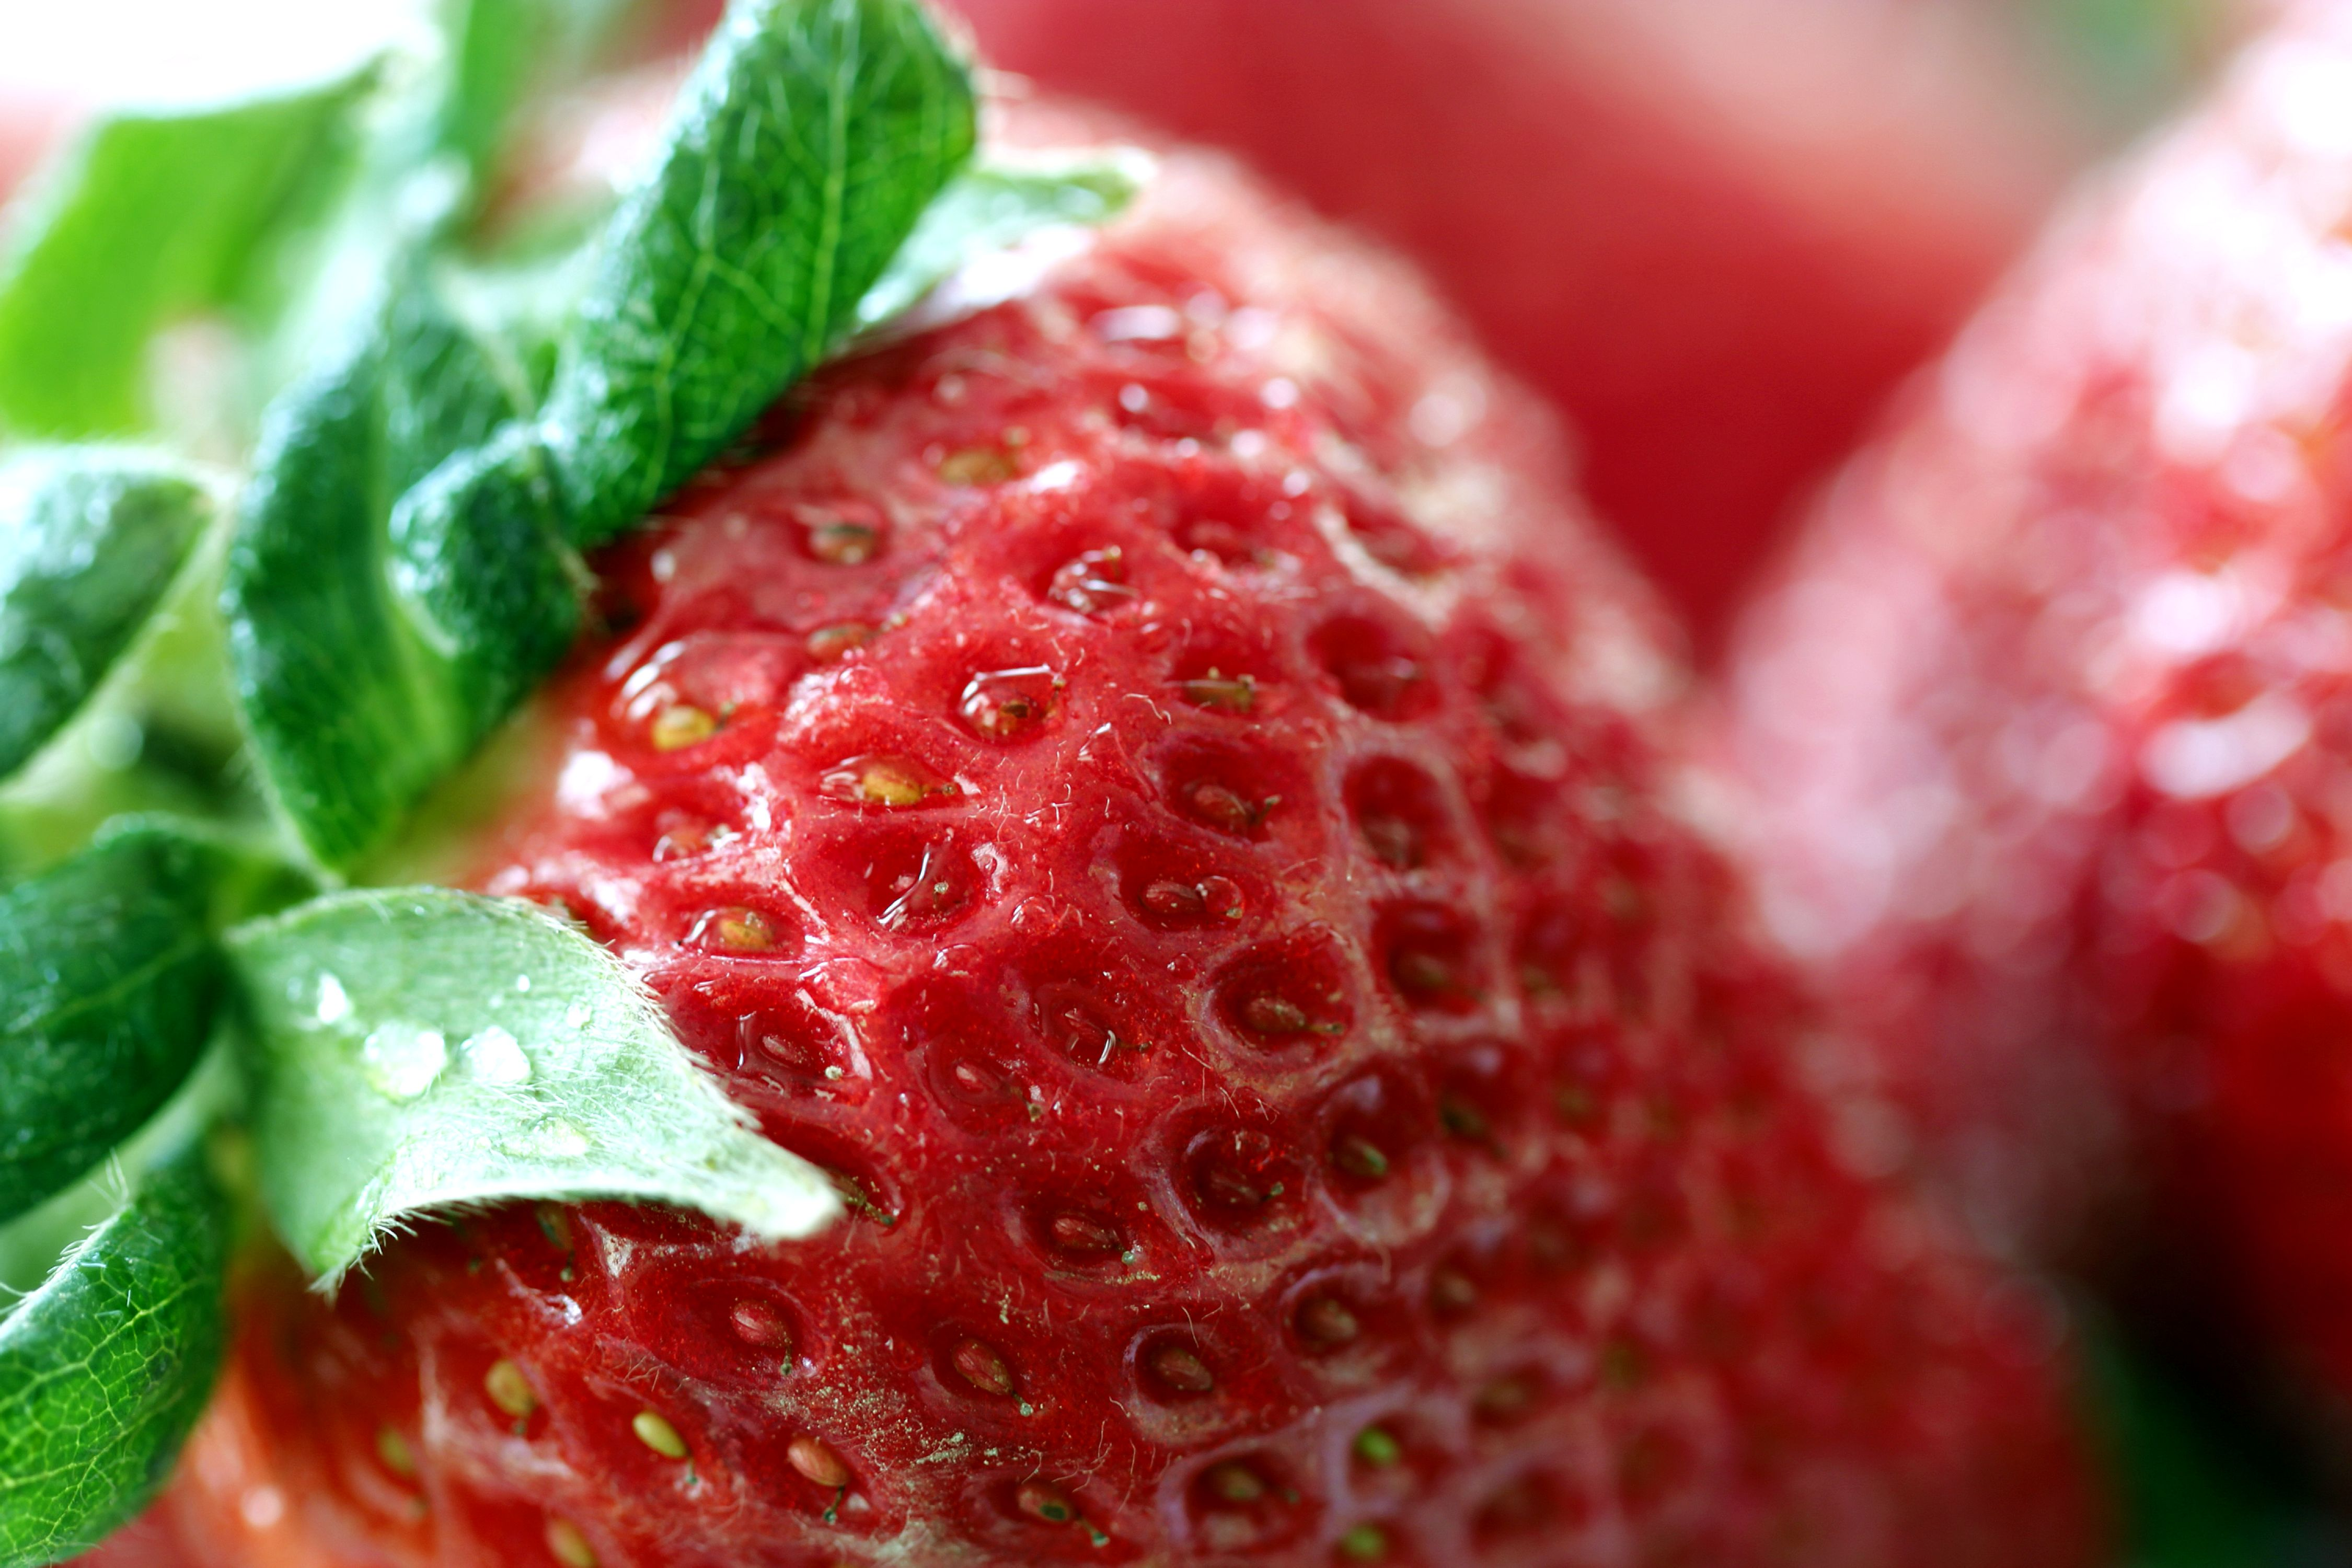 Free picture: red, ripe, strawberry, revealing, rough ...